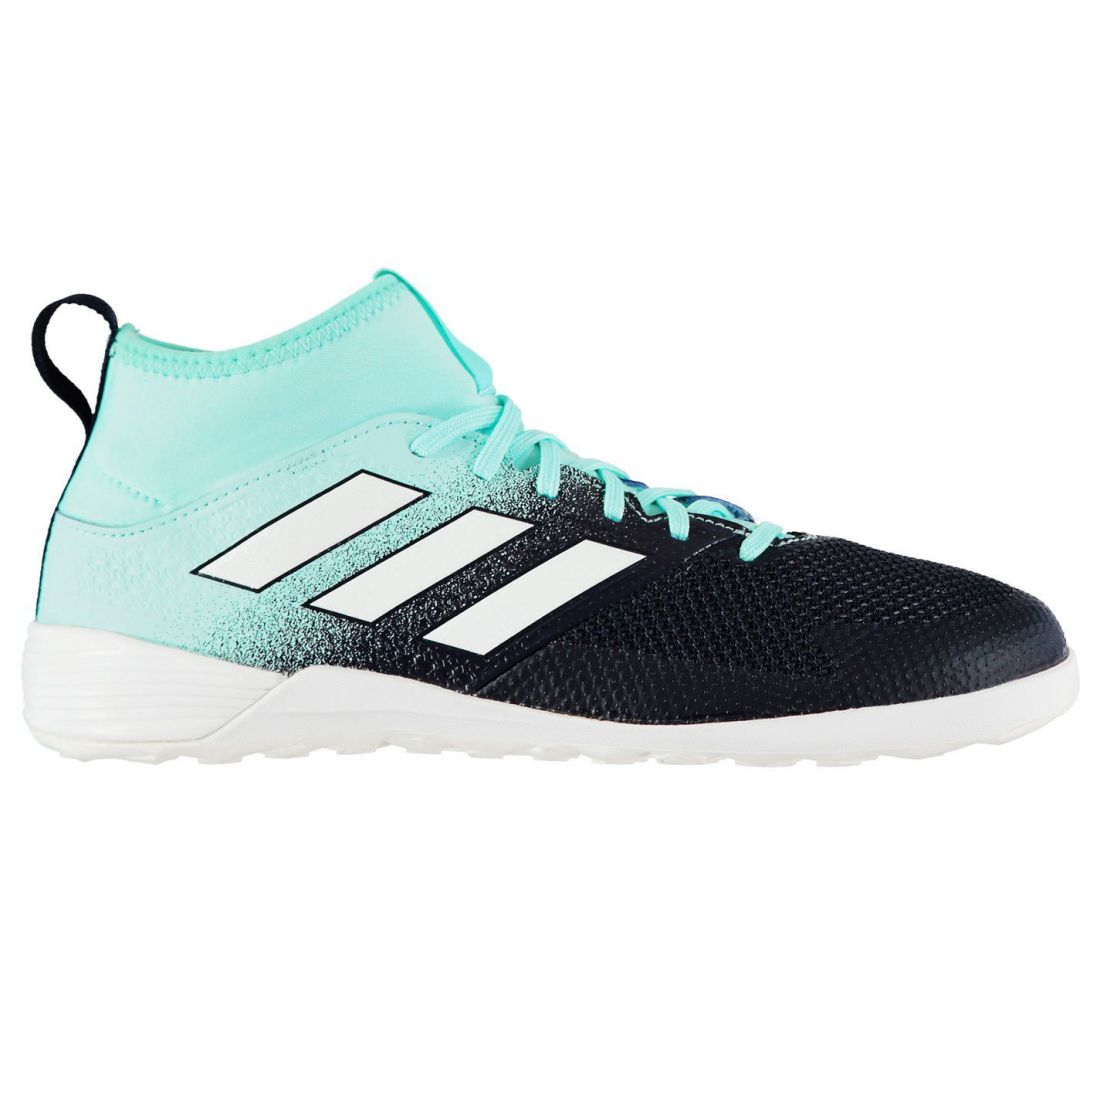 310495ca1a27 Details about adidas Ace Tango 17.3 IN Football Sneakers Mens Gents Indoor  Boots Laces